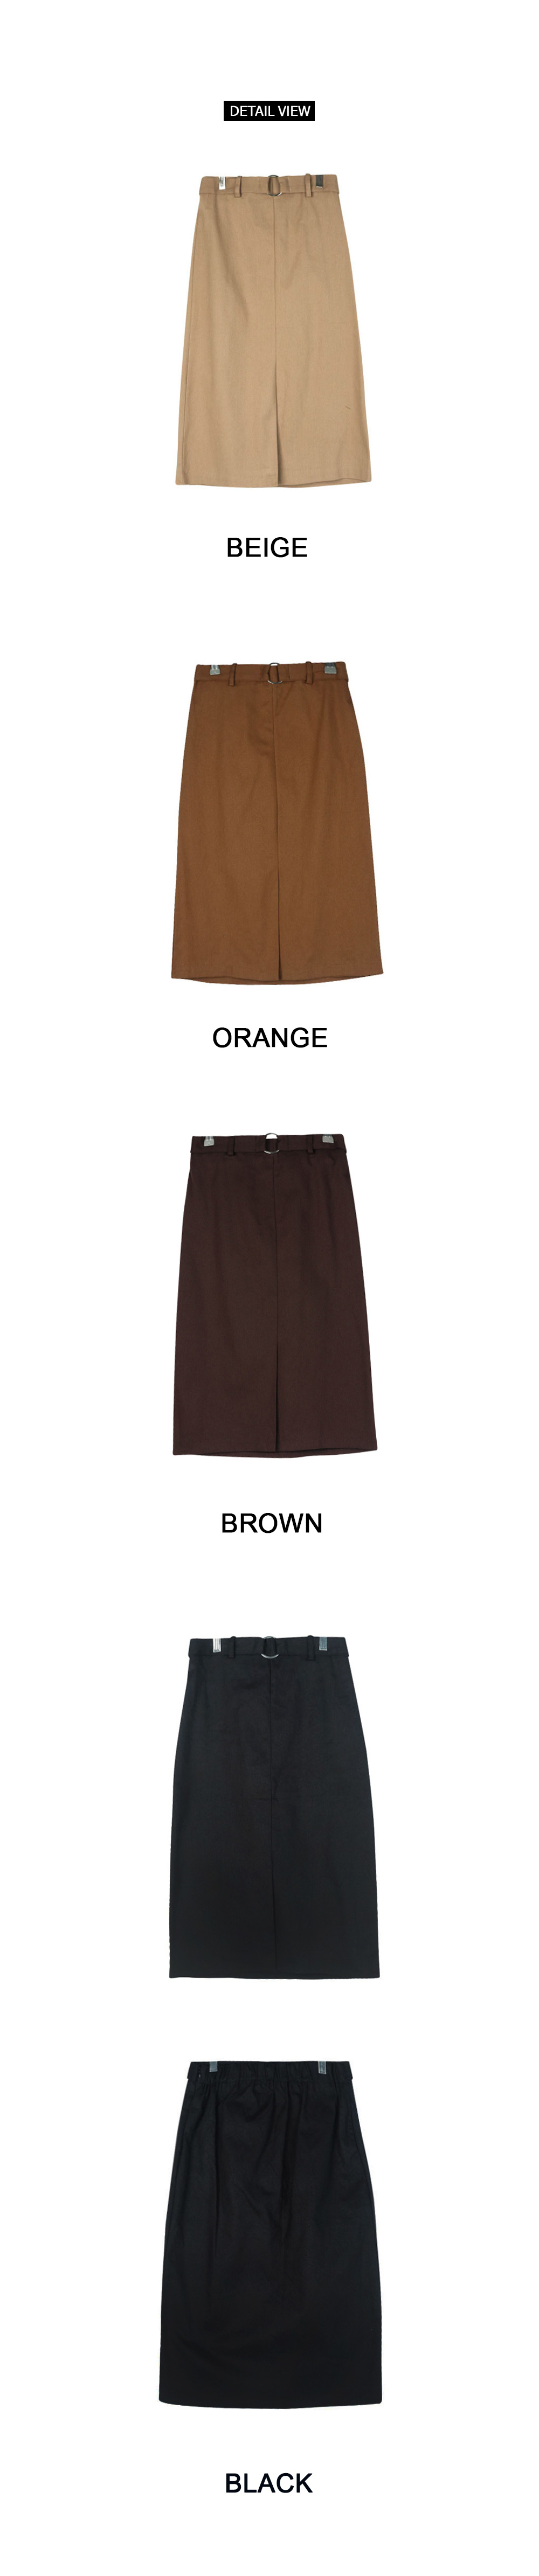 Basic Oringt Skirt